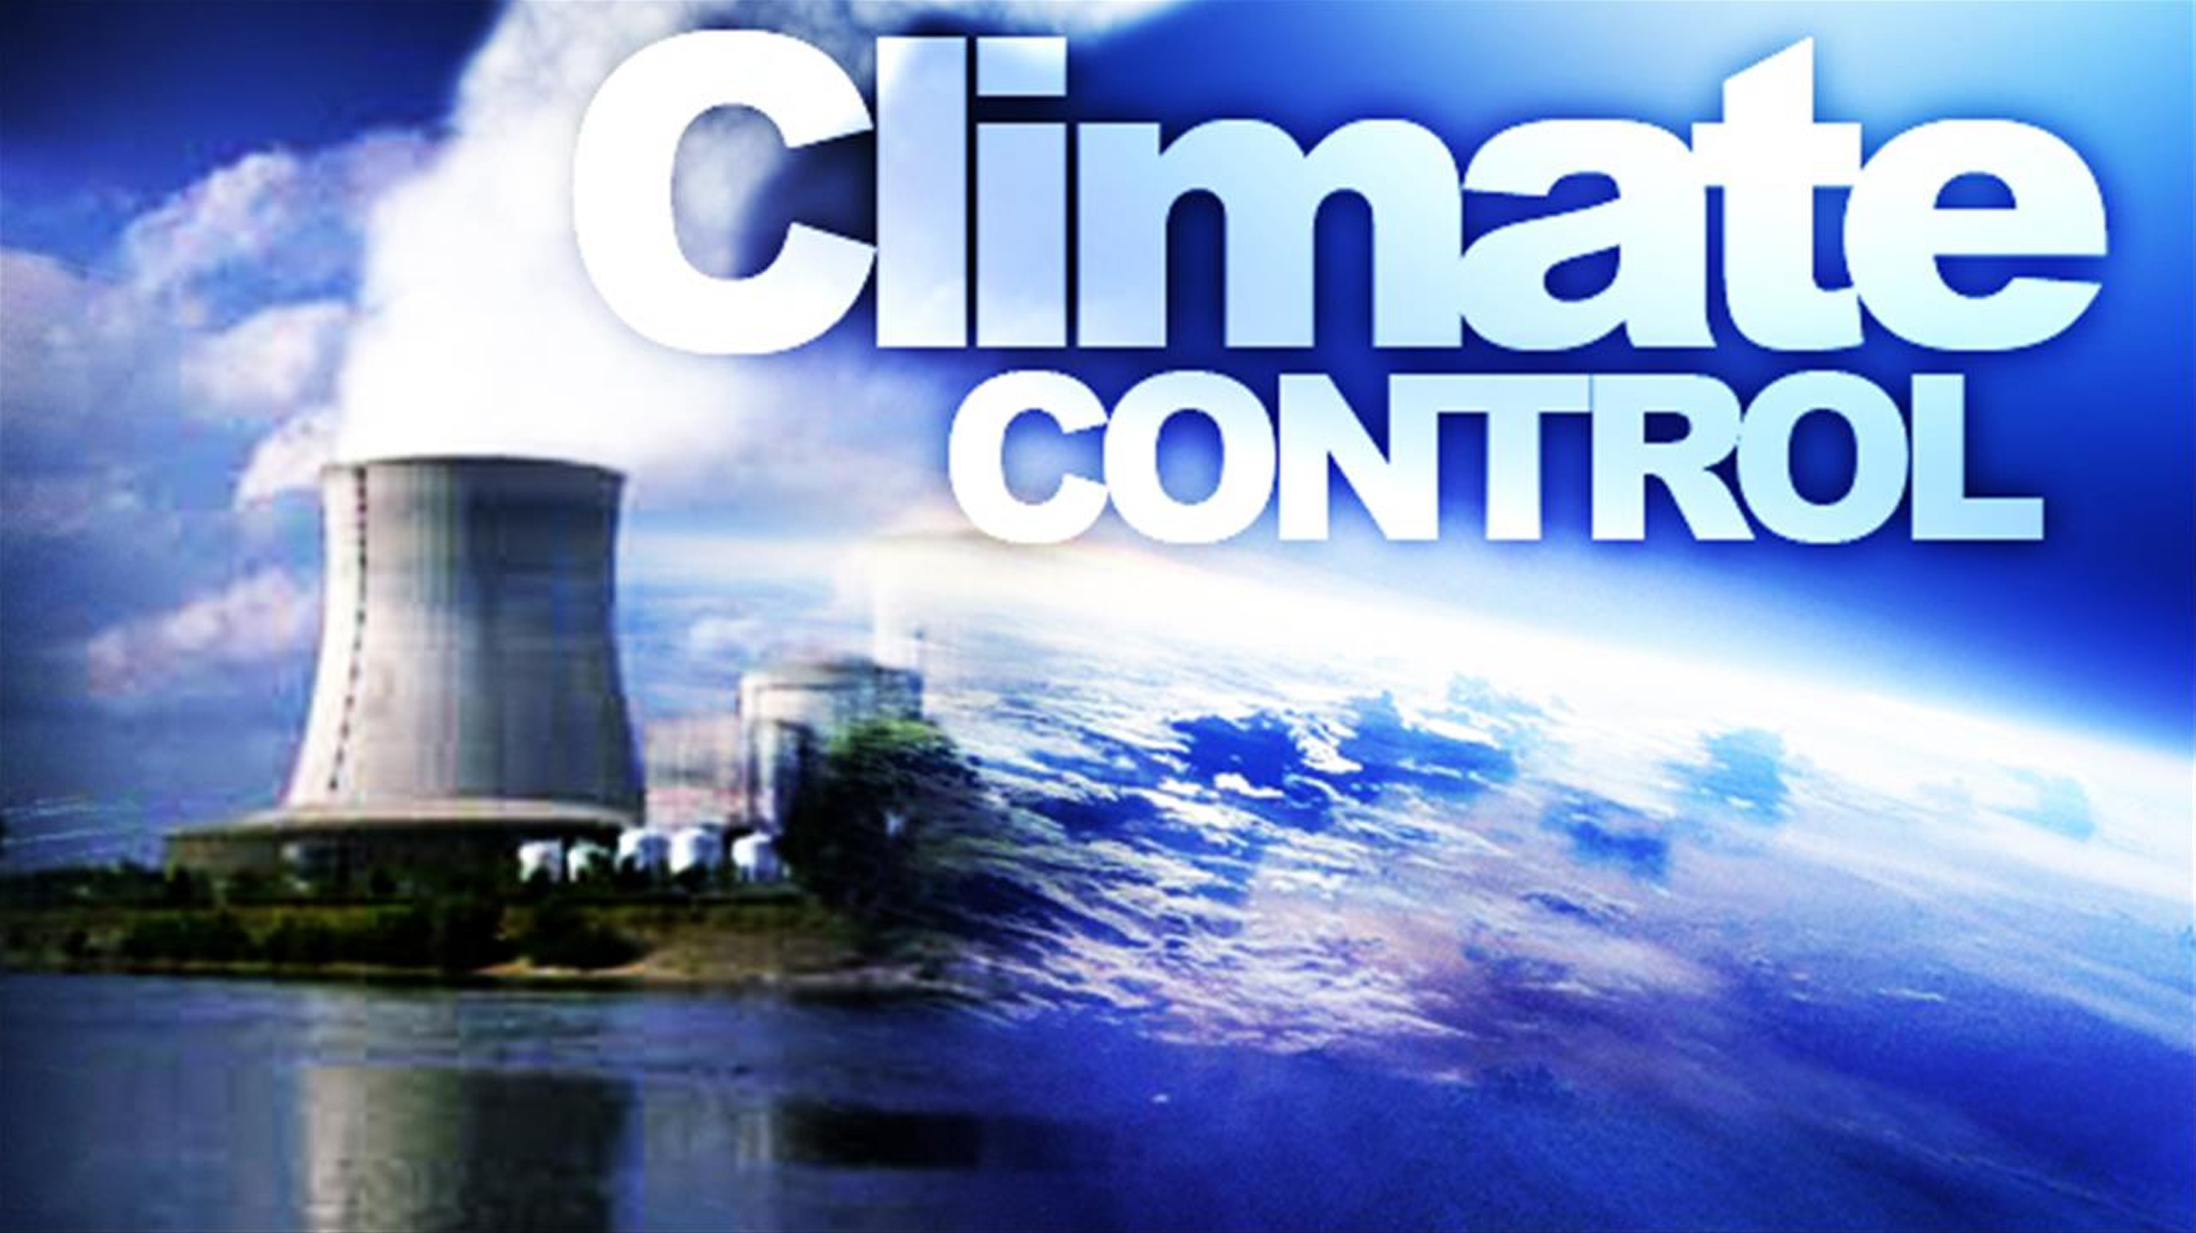 Climate Control FOR WEB_1444362217676.jpg